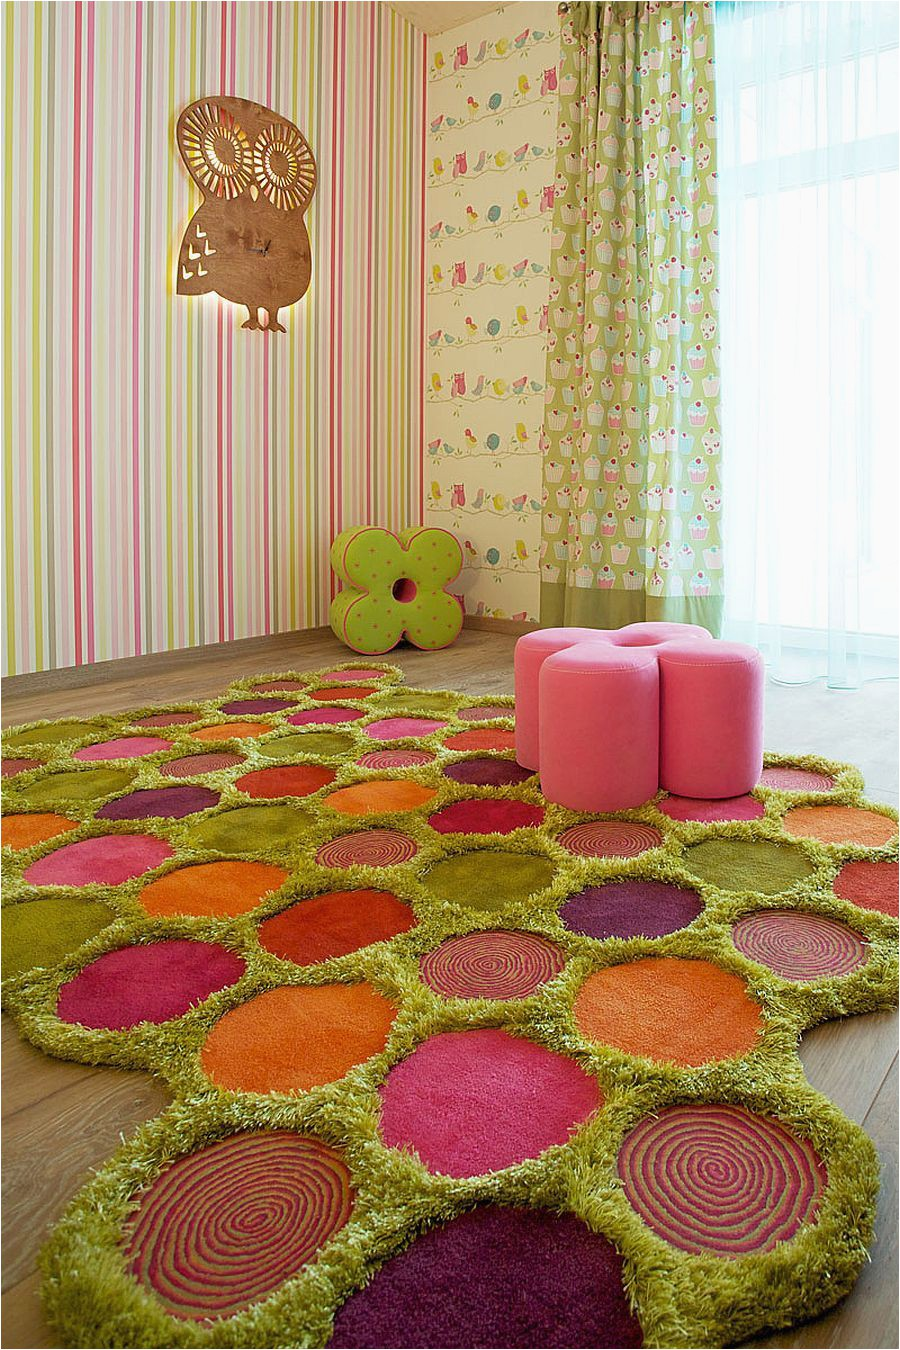 Best area Rugs for Kids Colorful Zest 25 Eye Catching Rug Ideas for Kids Rooms